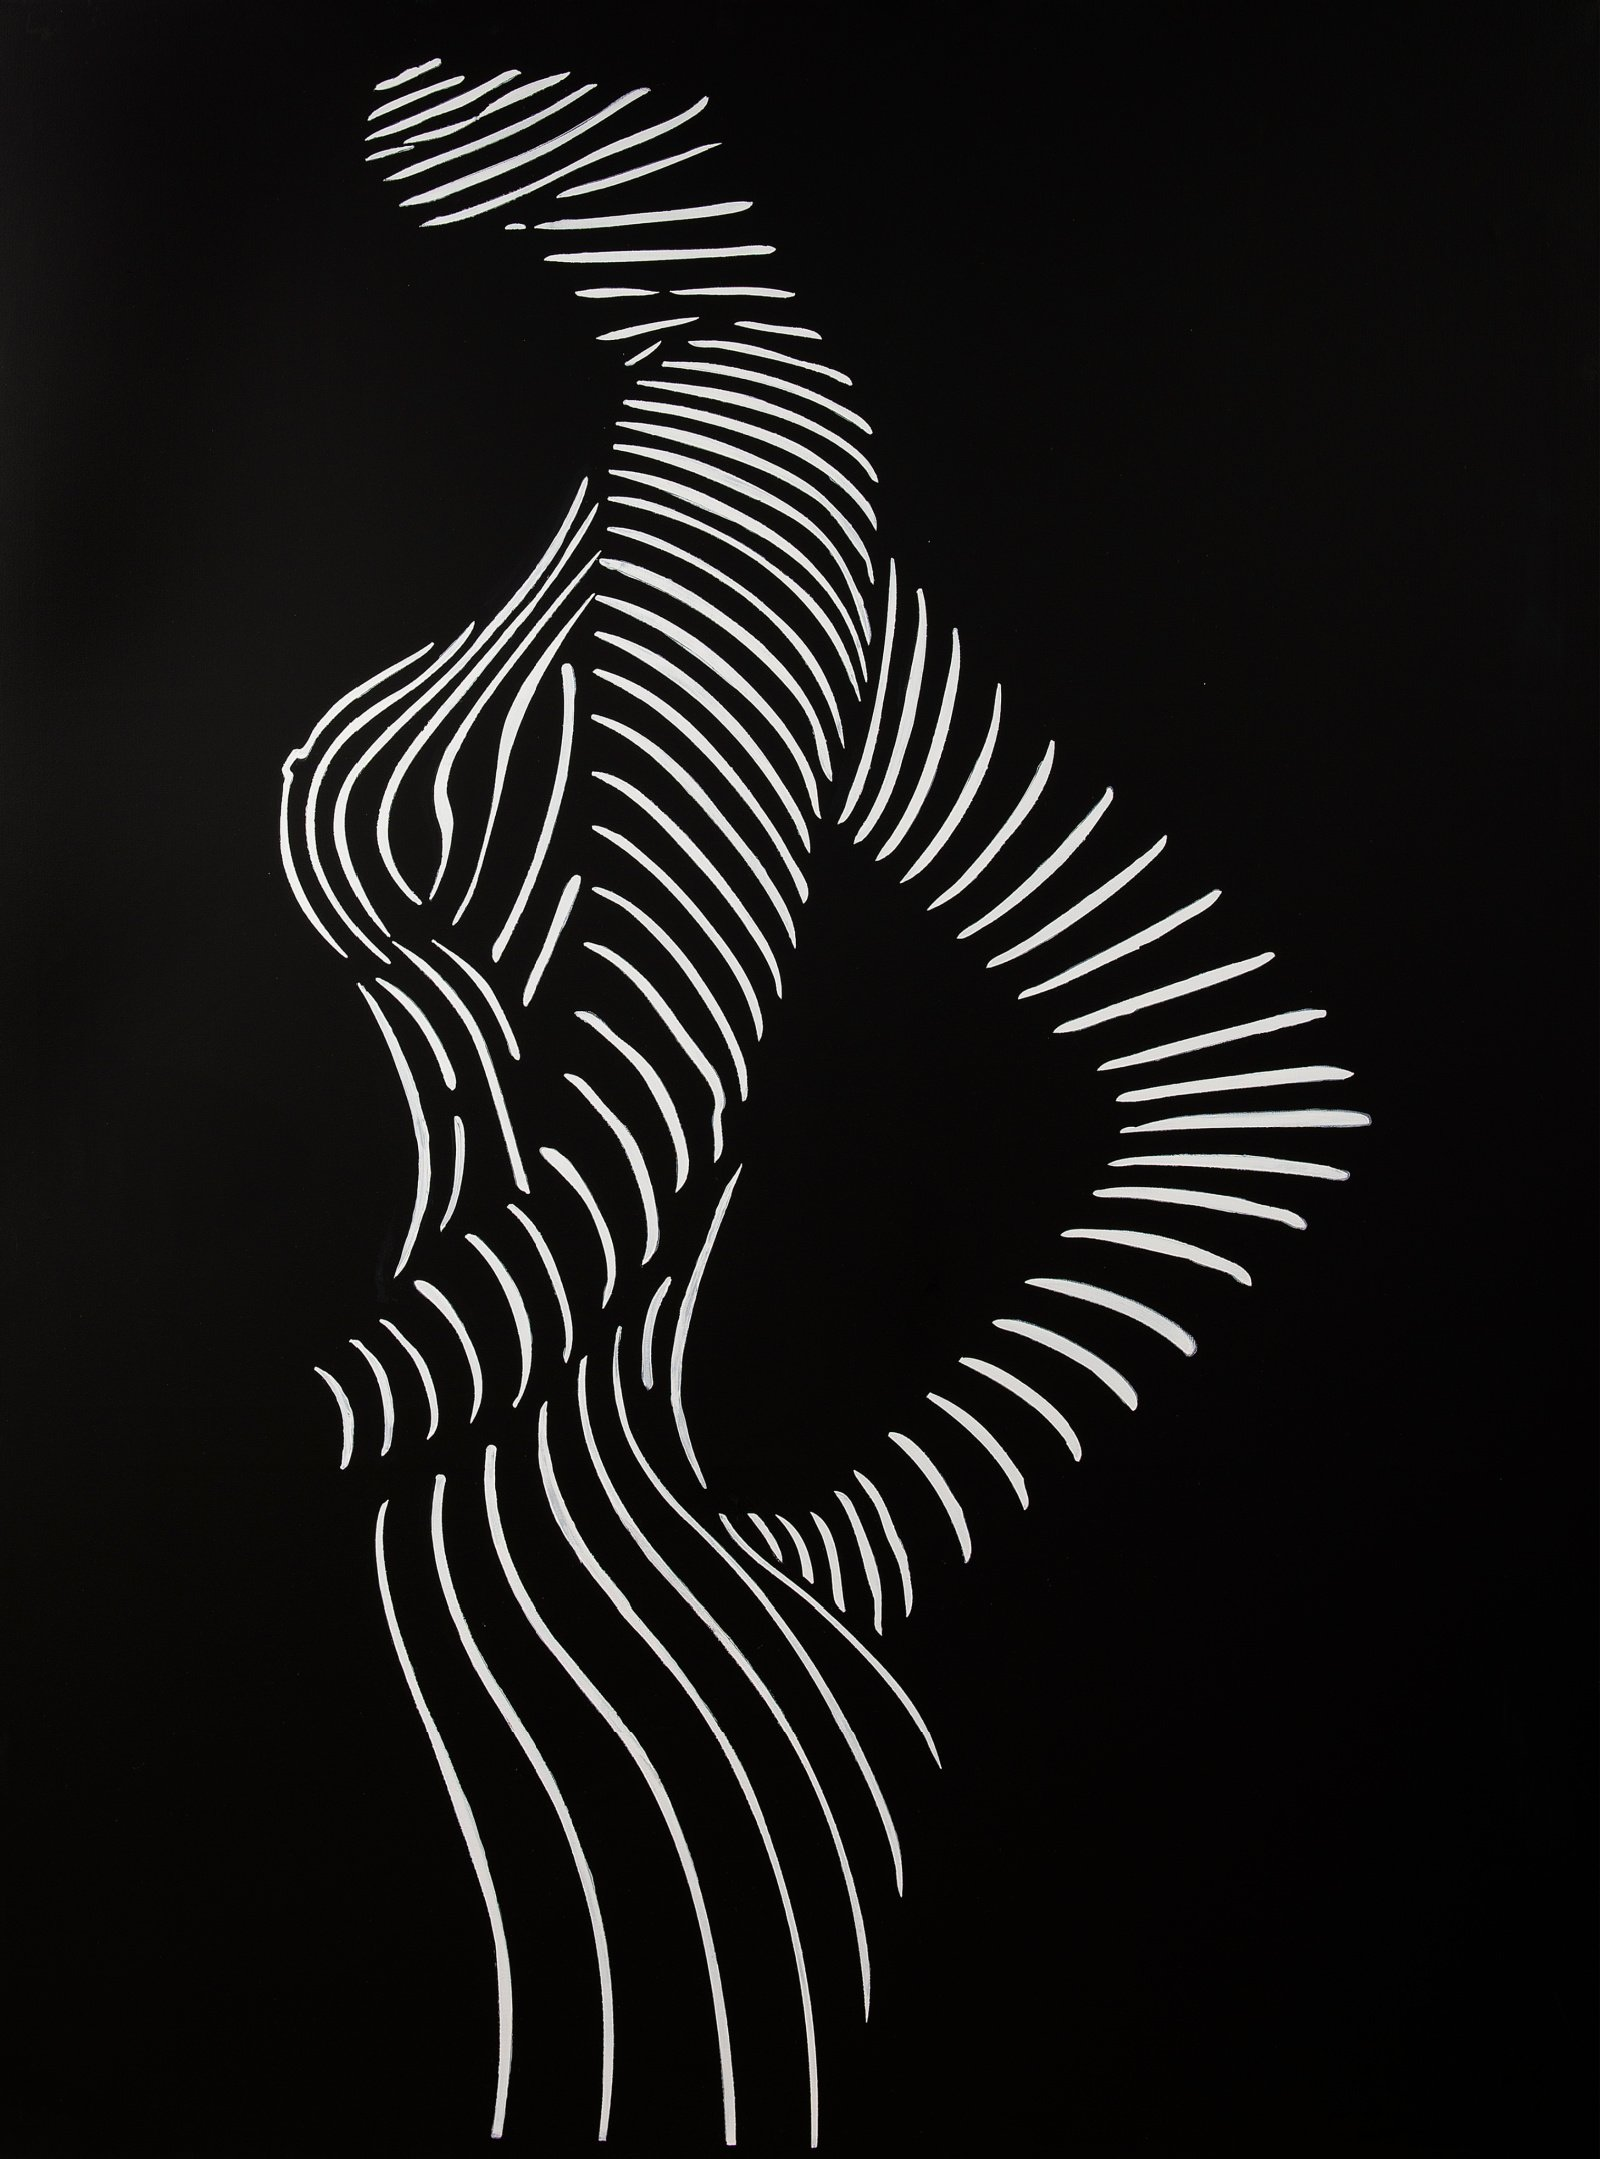 Abstract oil painting on a black background with white straight lines forming the outline of the side of a female figure by Ann Generlich